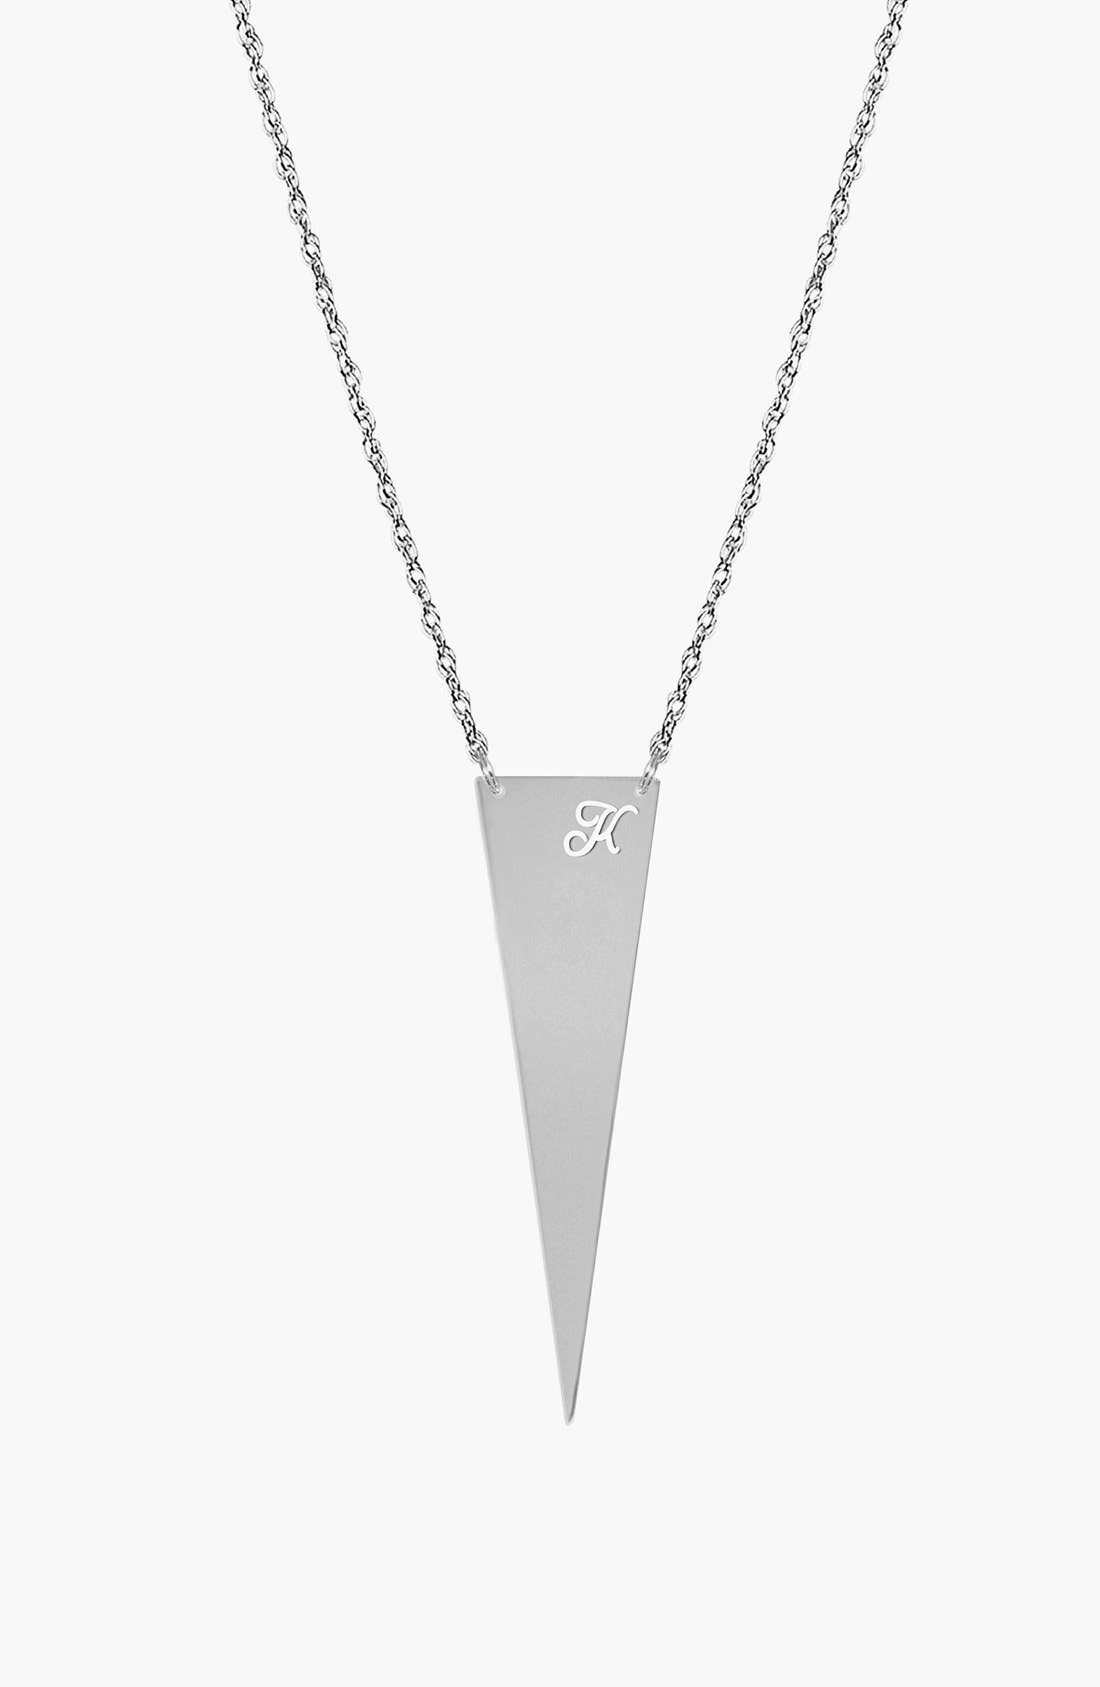 Main Image - Jane Basch Designs Personalized Initial Pendant Necklace